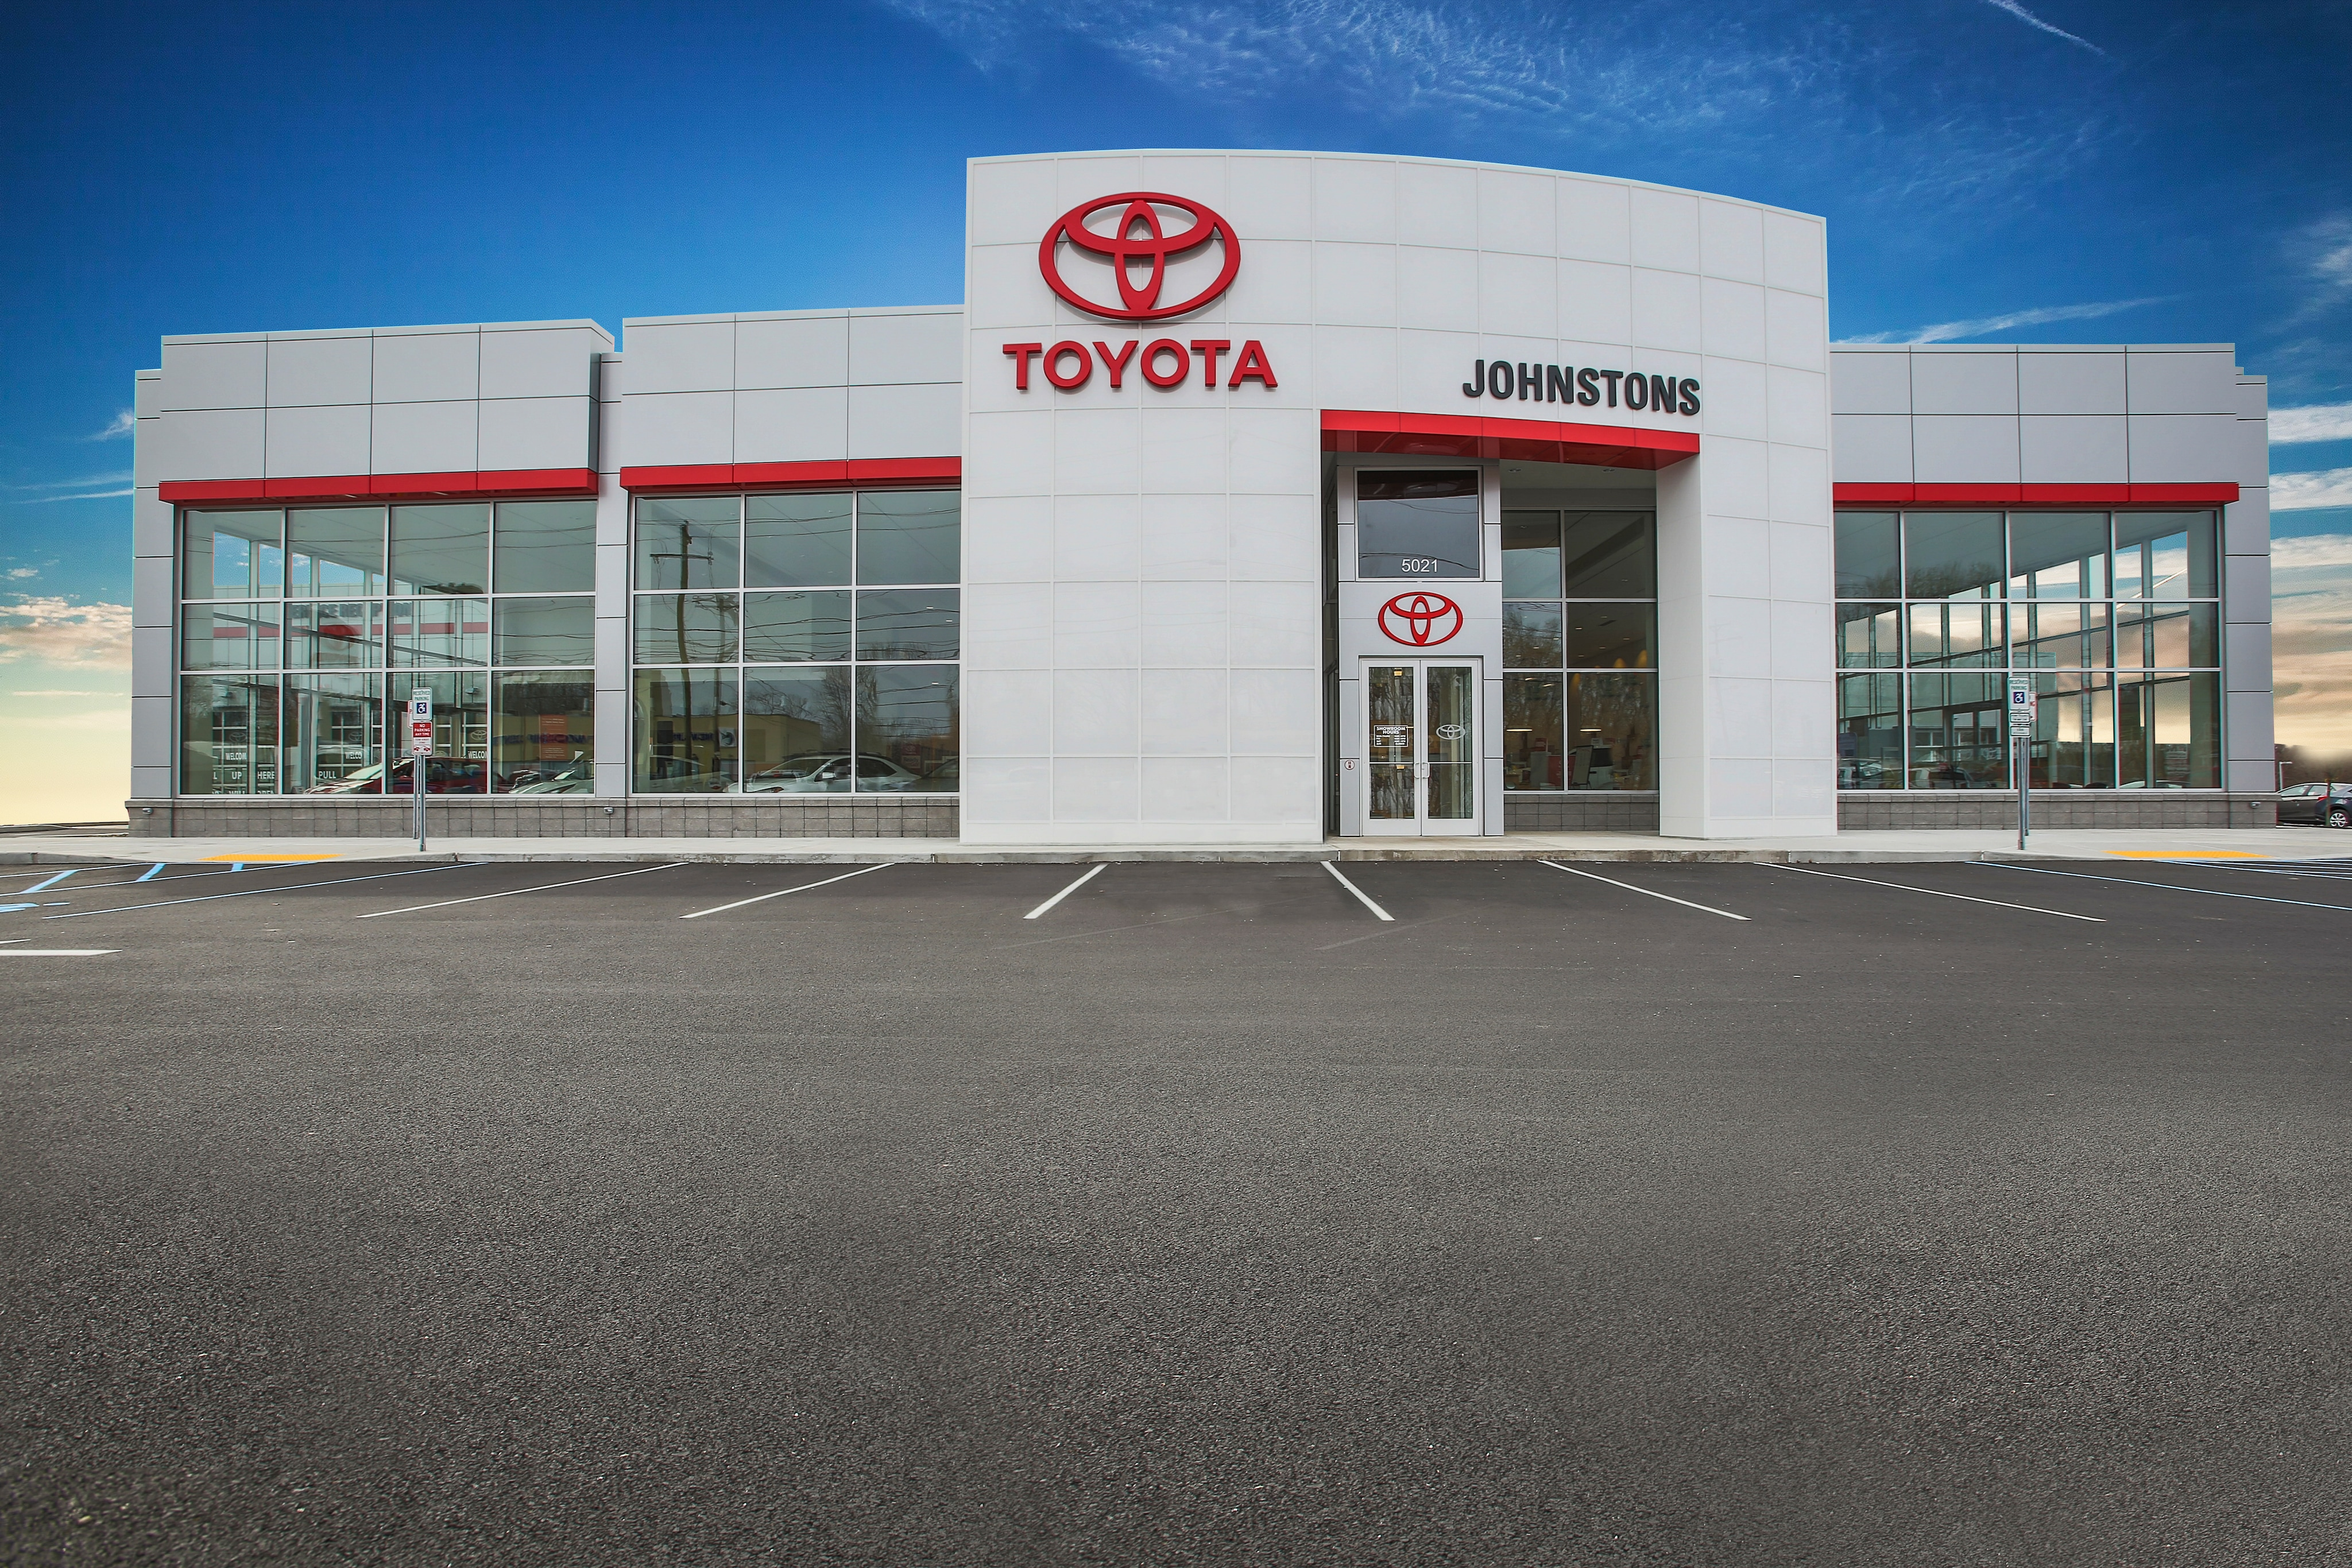 defining APR at Johnstons Toyota in New Hampton